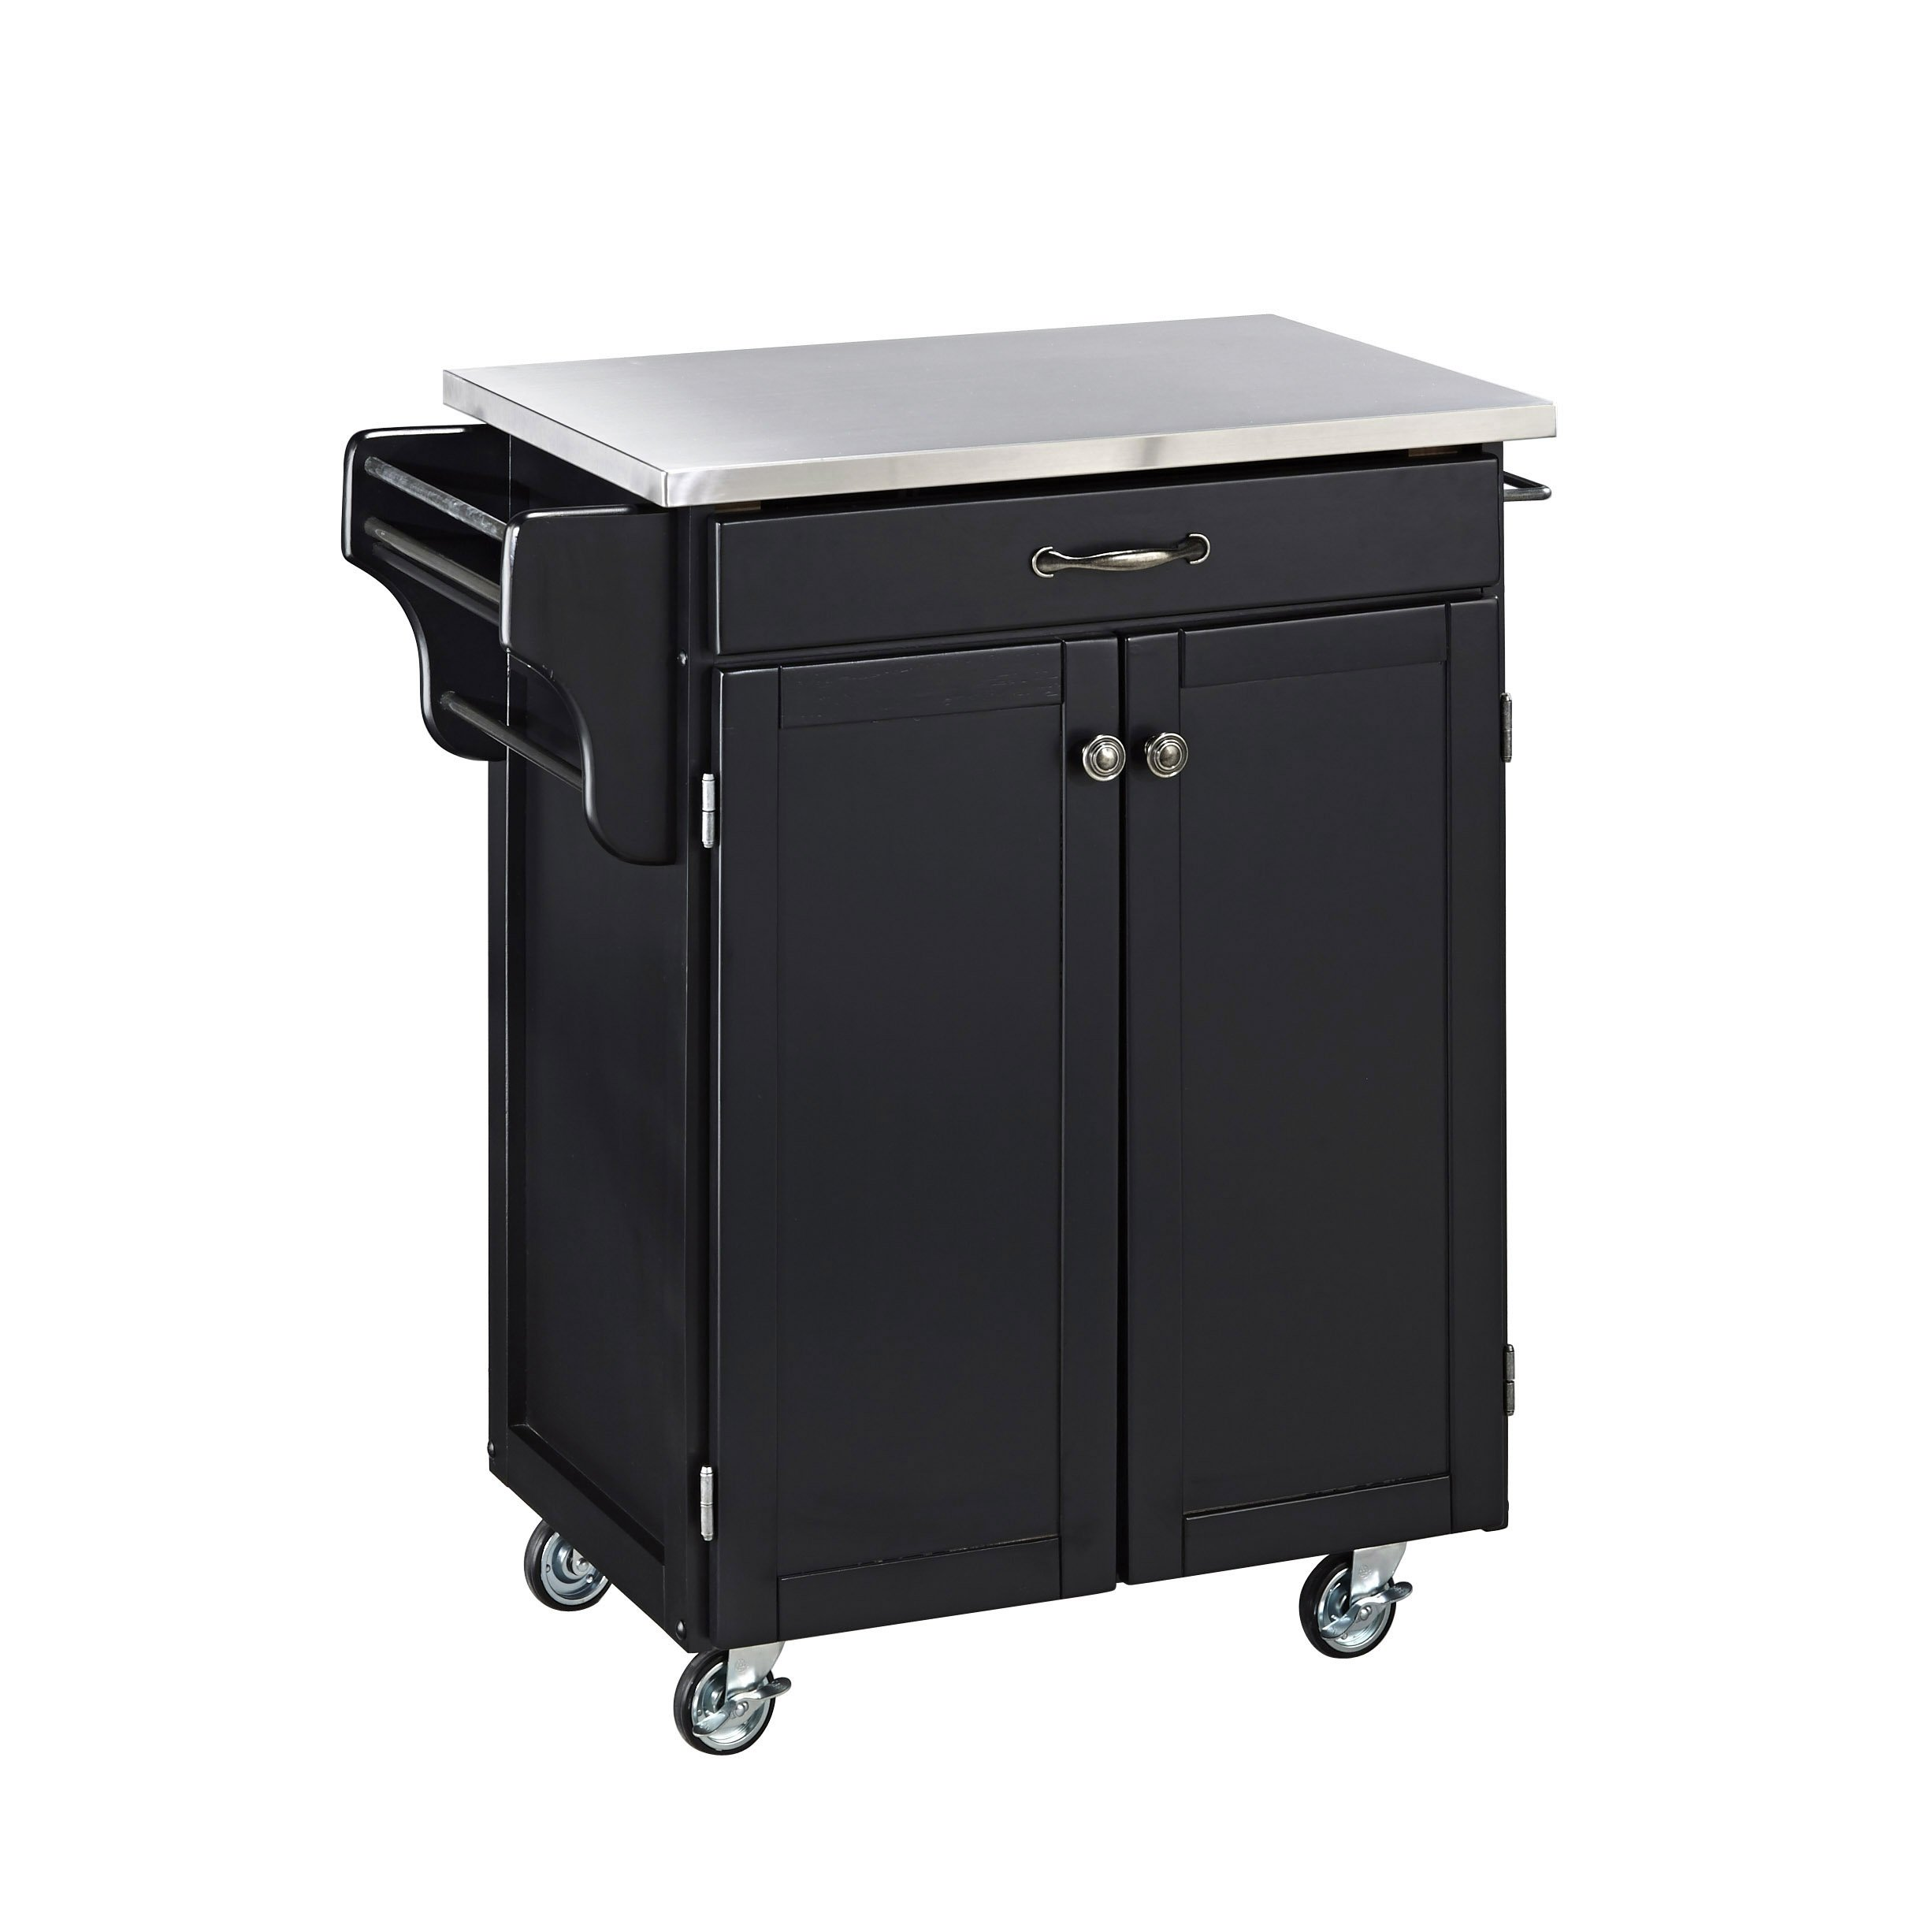 Create-a-Cart Black 2 Door Kitchen Cart with Stainless Steel Top by Home Styles by Home Styles (Image #2)